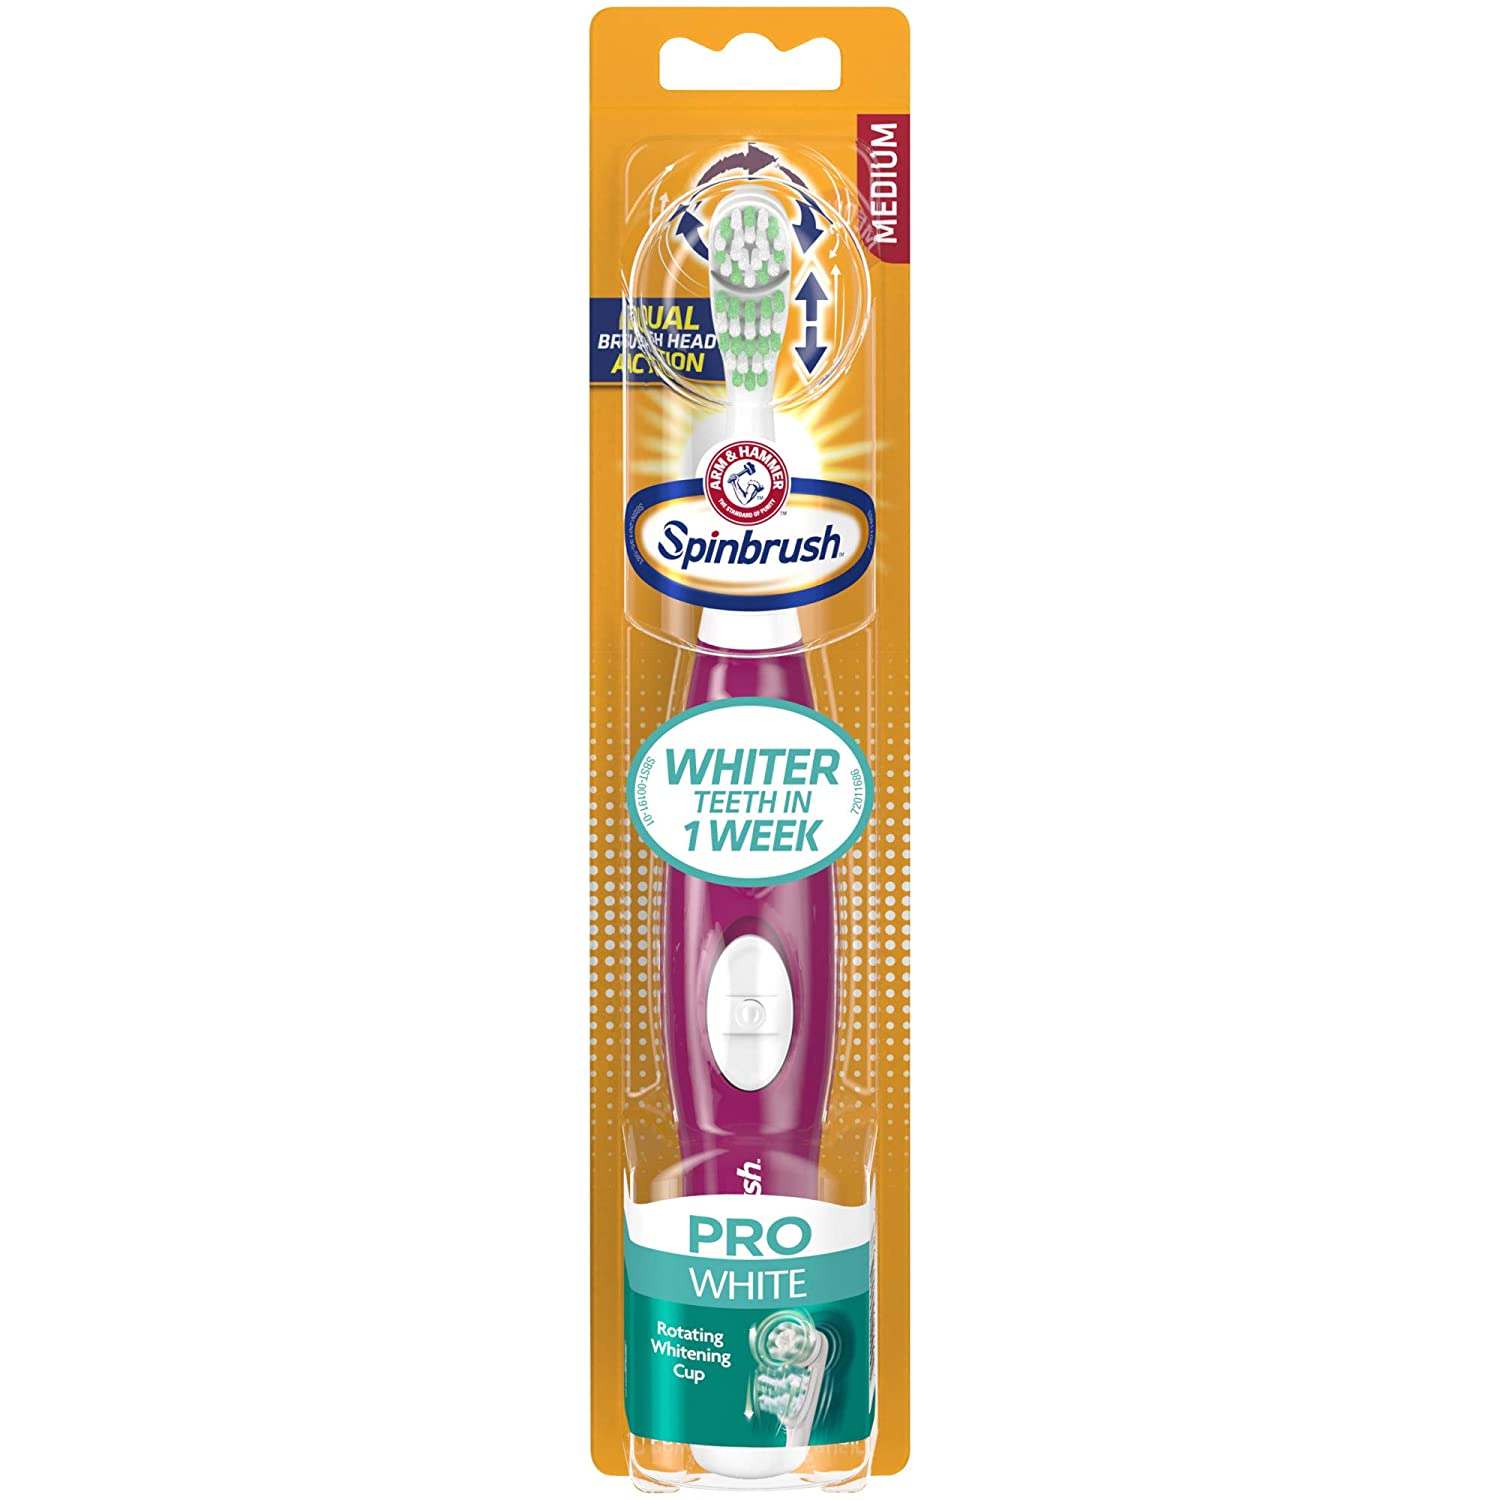 Arm & Hammer Spinbrush Pro Series White Battery Toothbrush, Medium, 1 Count